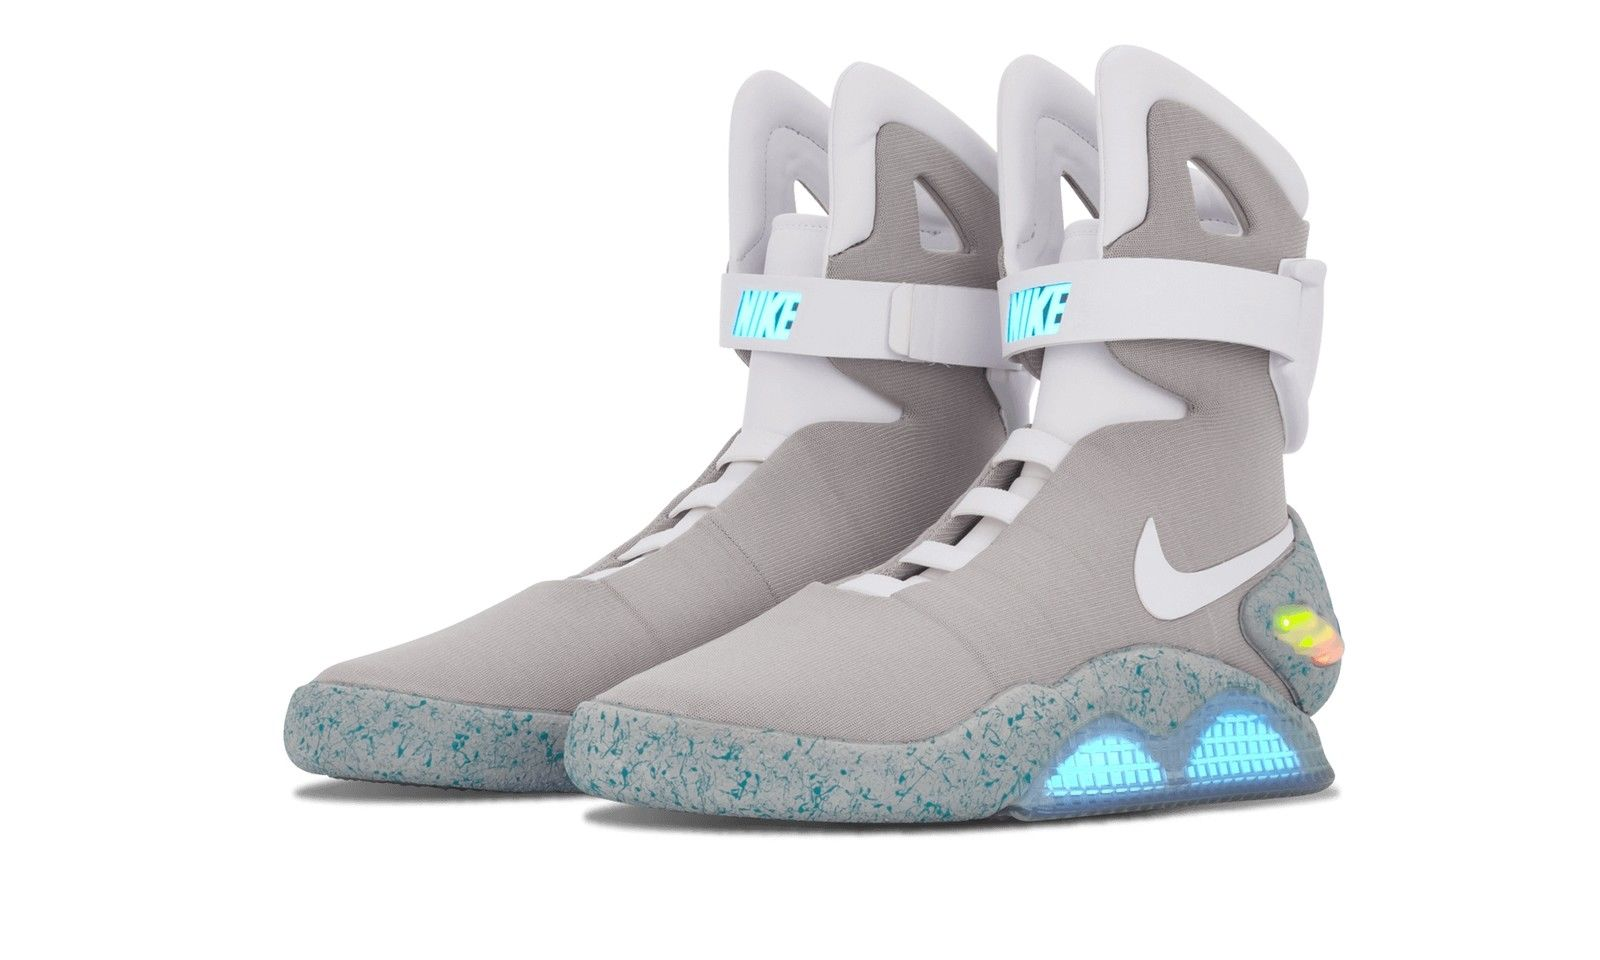 Nike Nike Air Mags Size 11 - Hi-Top Sneakers for Sale - Grailed 6443968f5